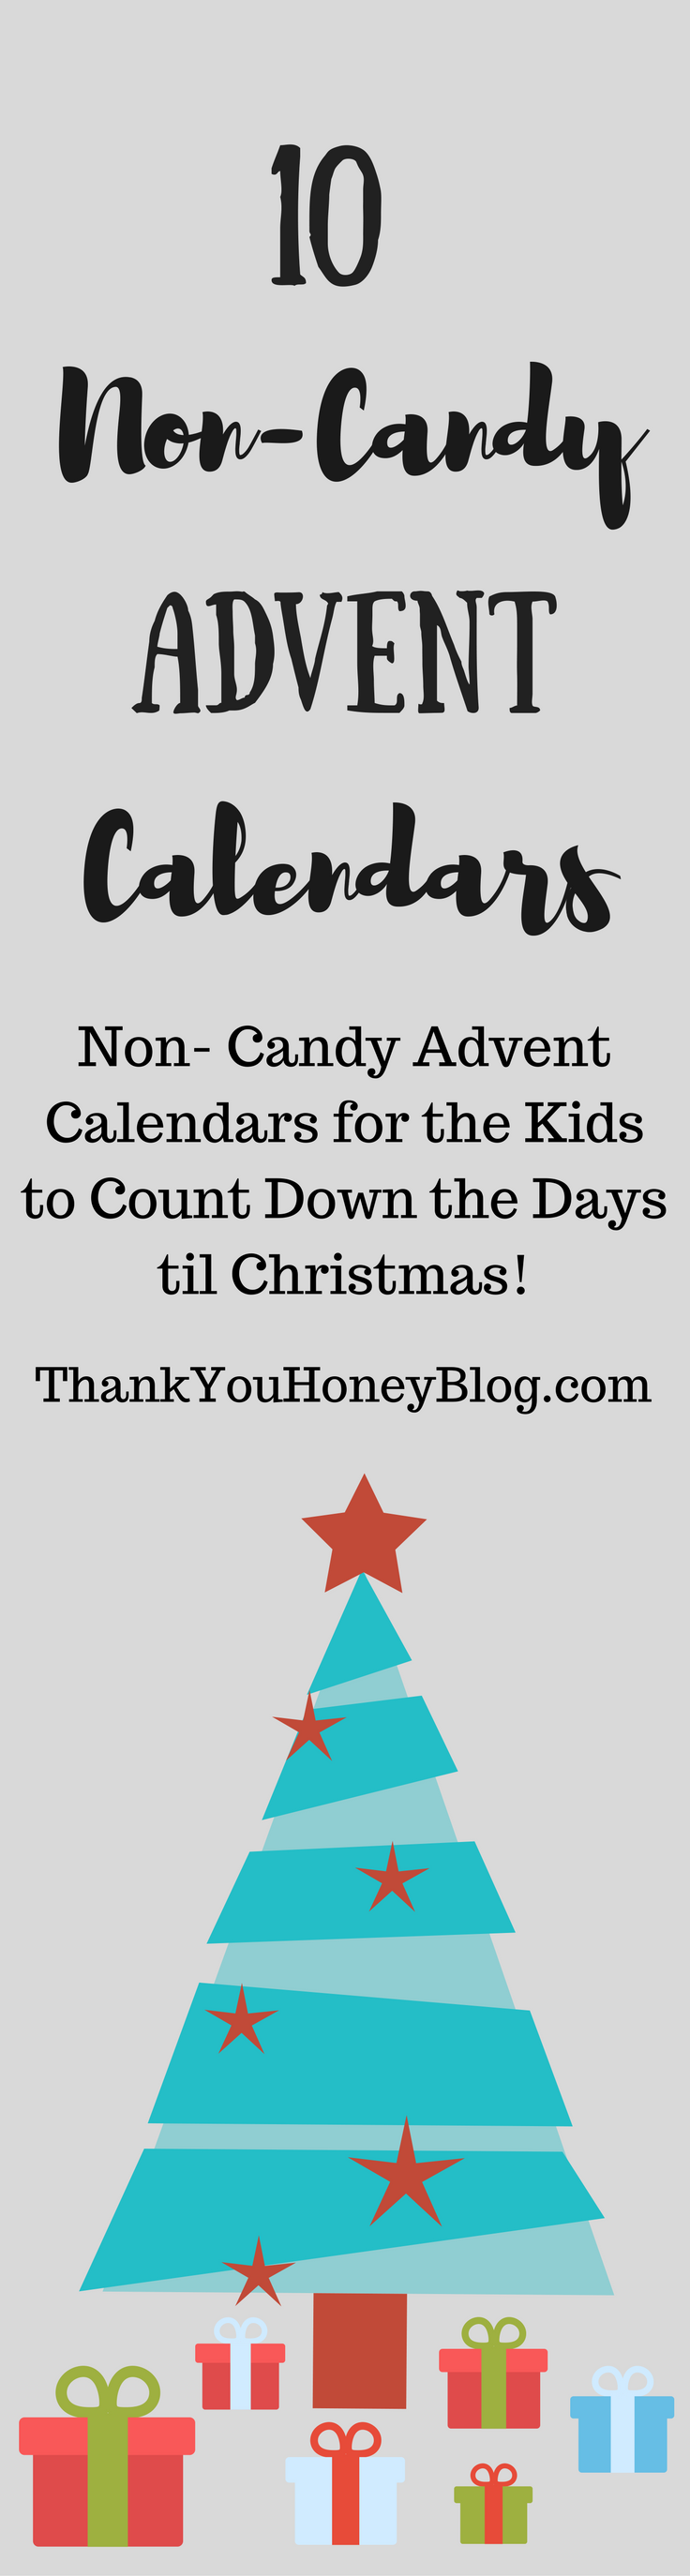 10 Awesome Non- Candy Advent Calendars